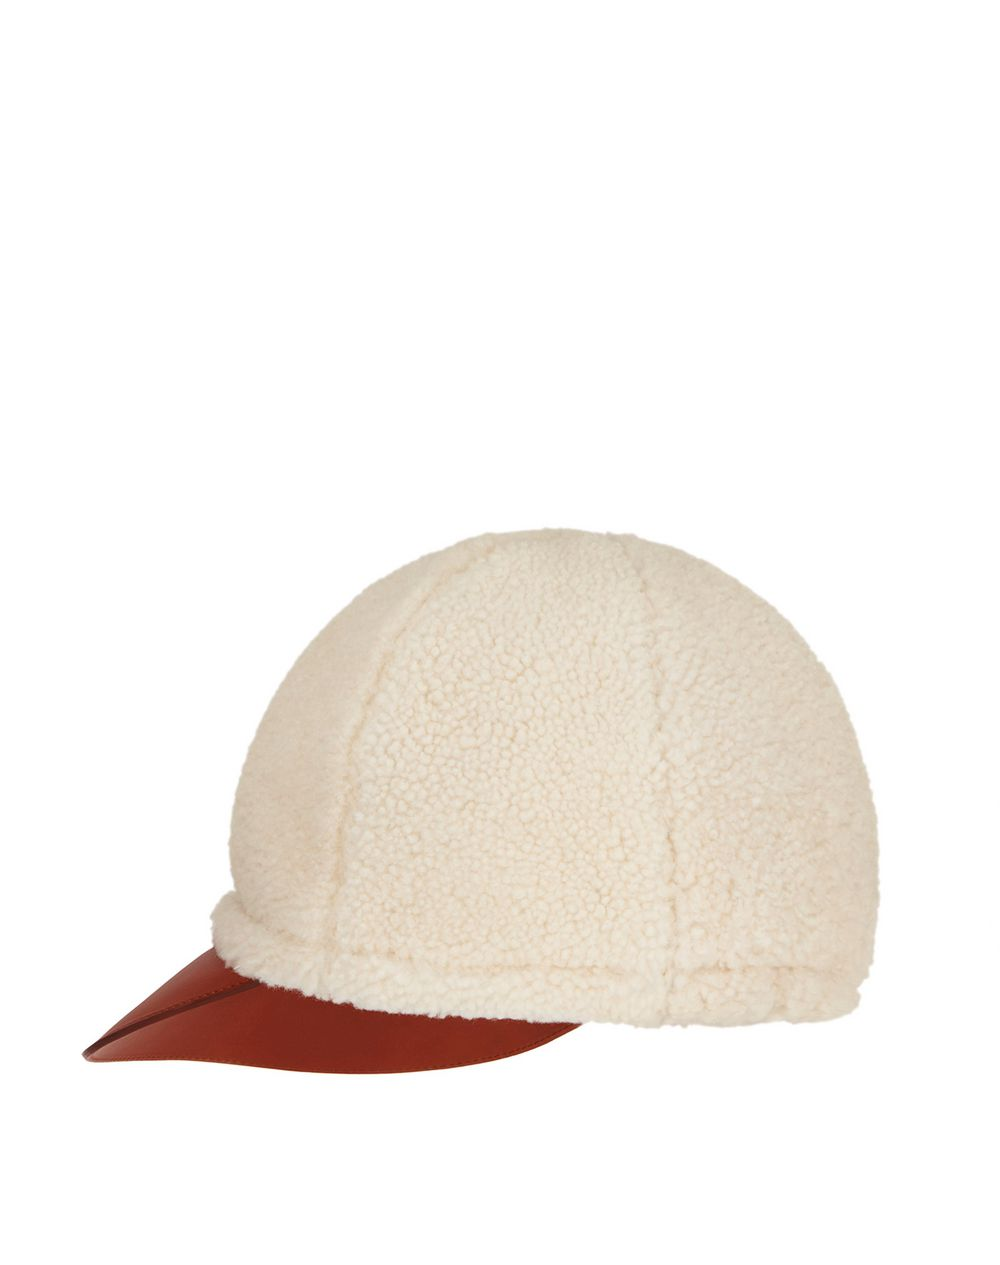 SHEARLING AND LEATHER CAP - Lanvin